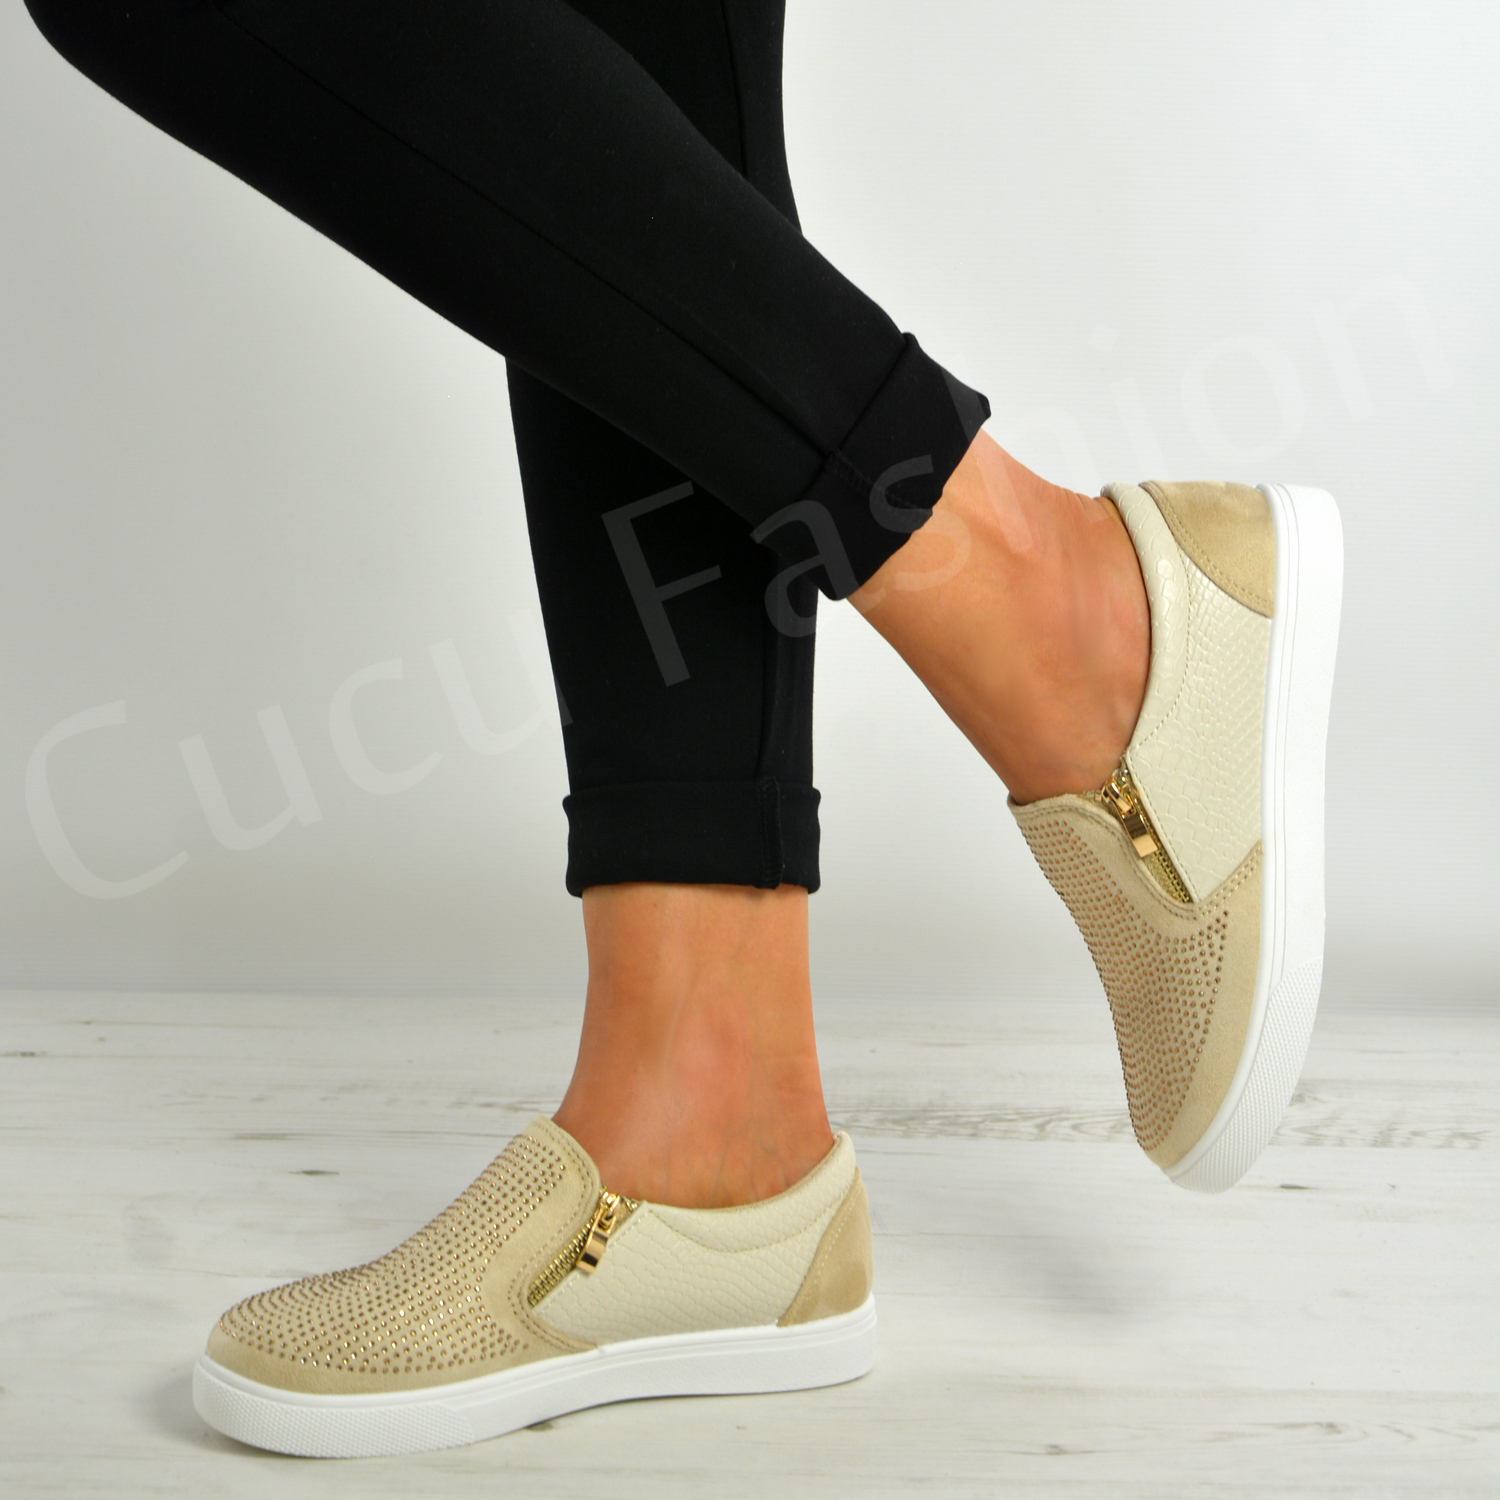 New-Womens-Ladies-Slip-On-Studded-Flat-Trainers-Zip-Shoes-Size-Uk-3-8 thumbnail 4